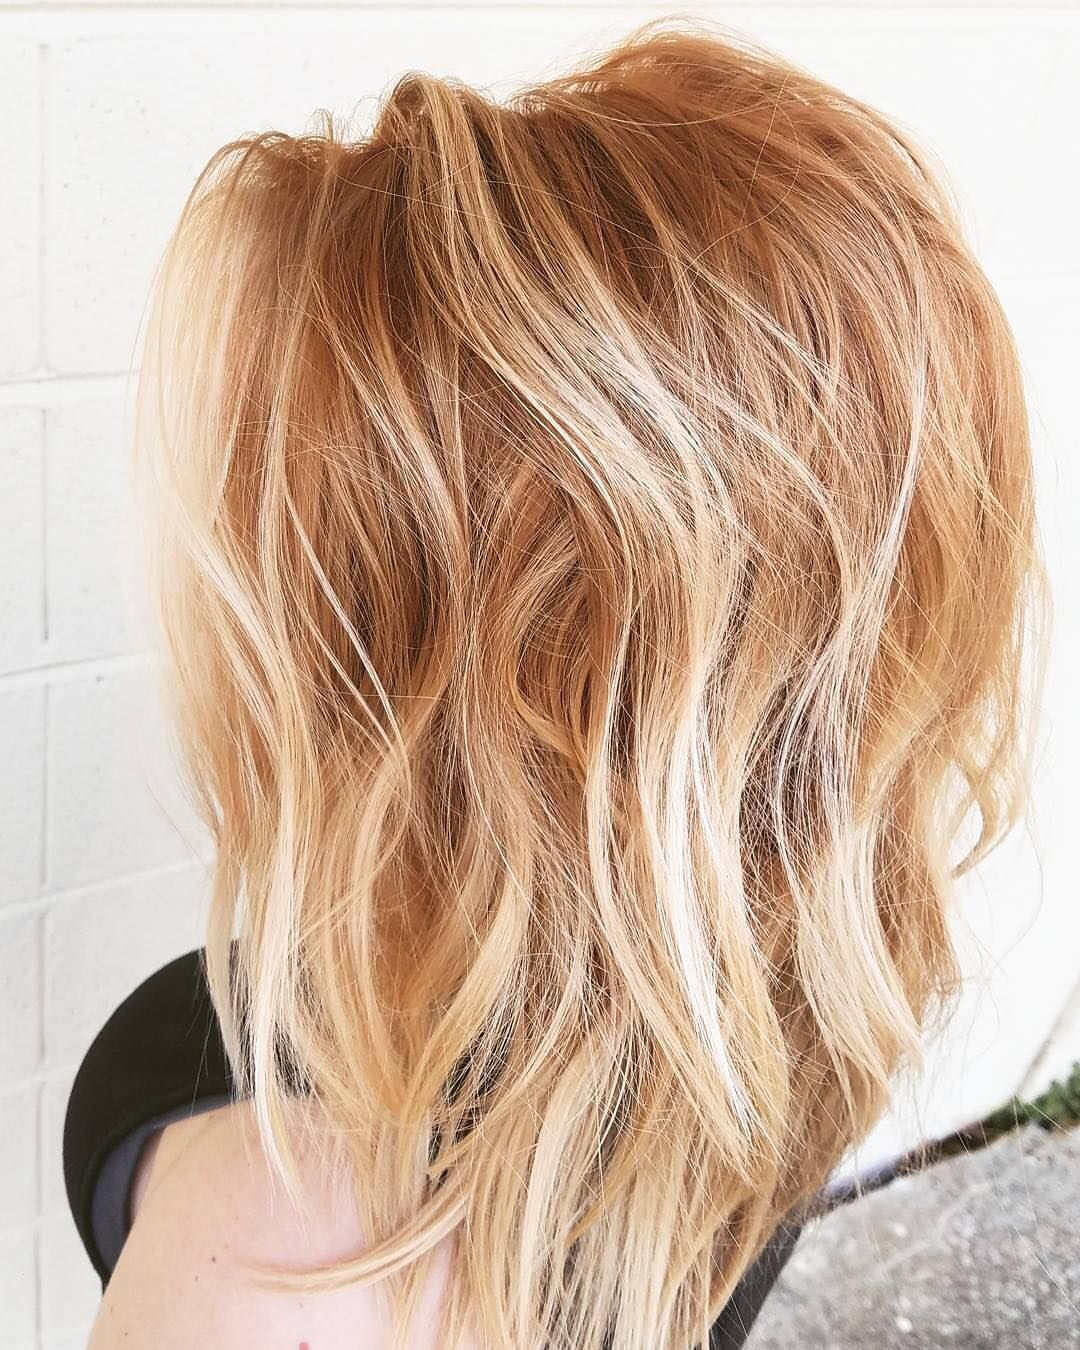 tousled strawberry blonde waves | huuur in 2019 | strawberry